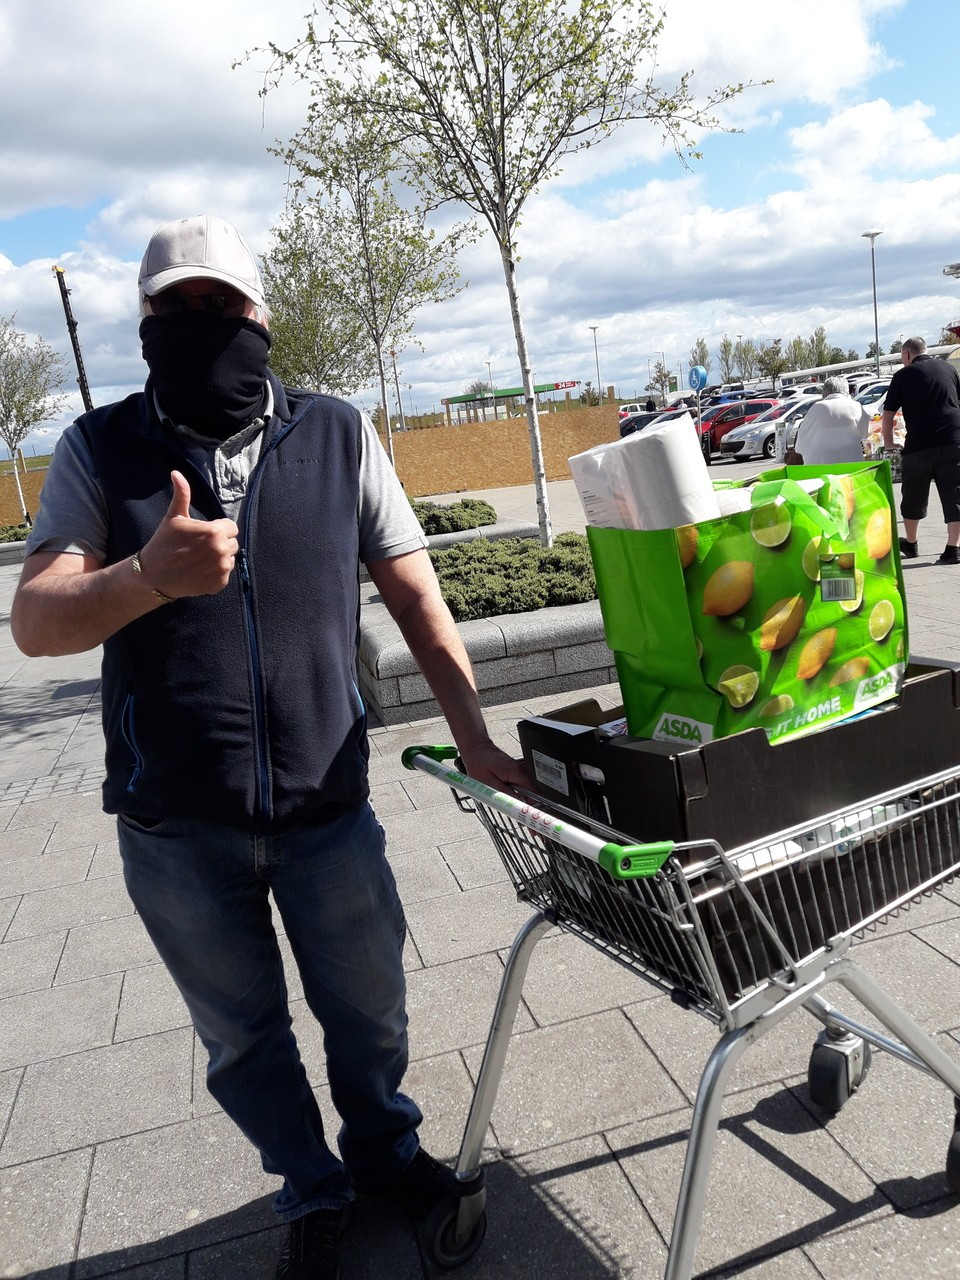 Supporting communities | Asda Leith